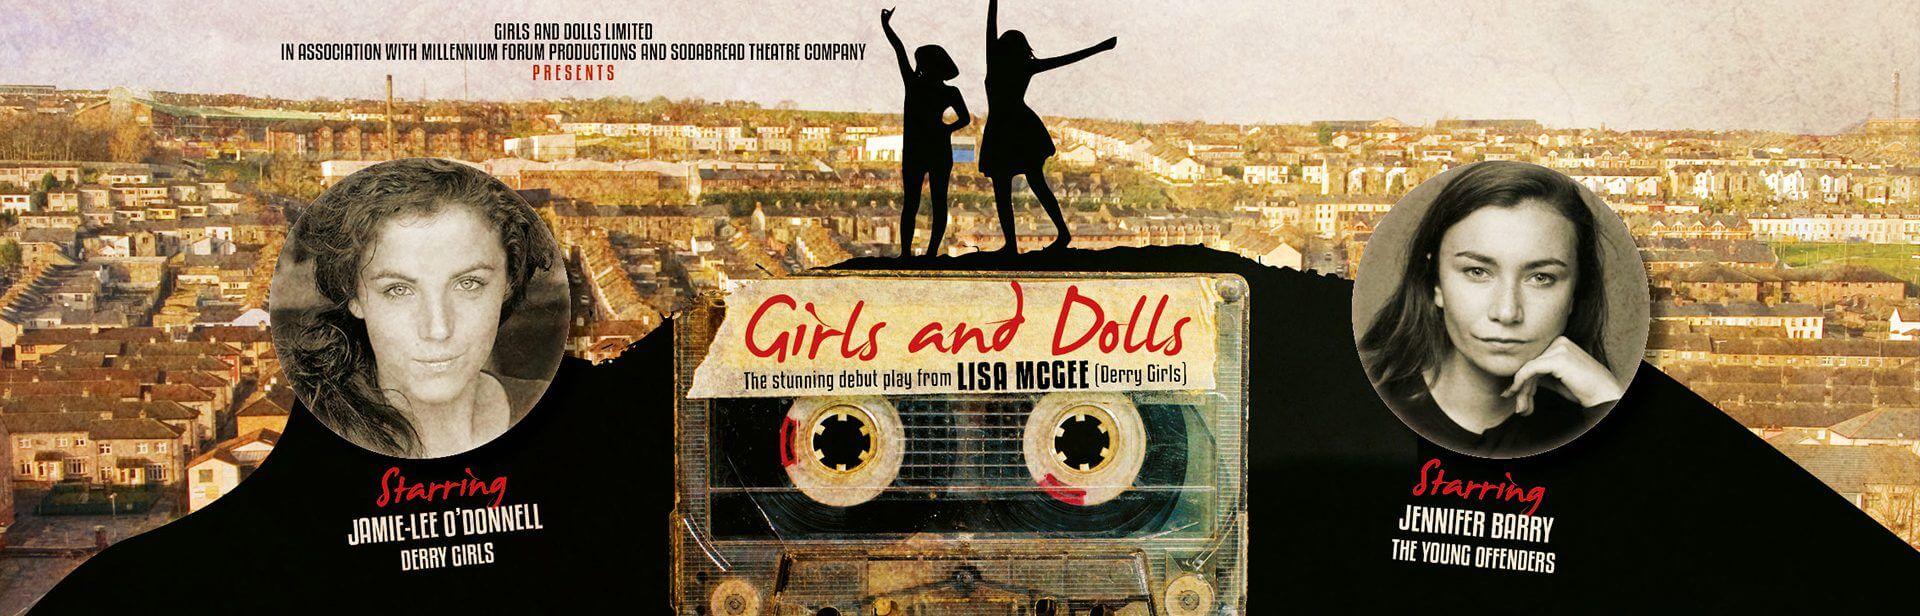 Dolls of the Dublin Theater 77